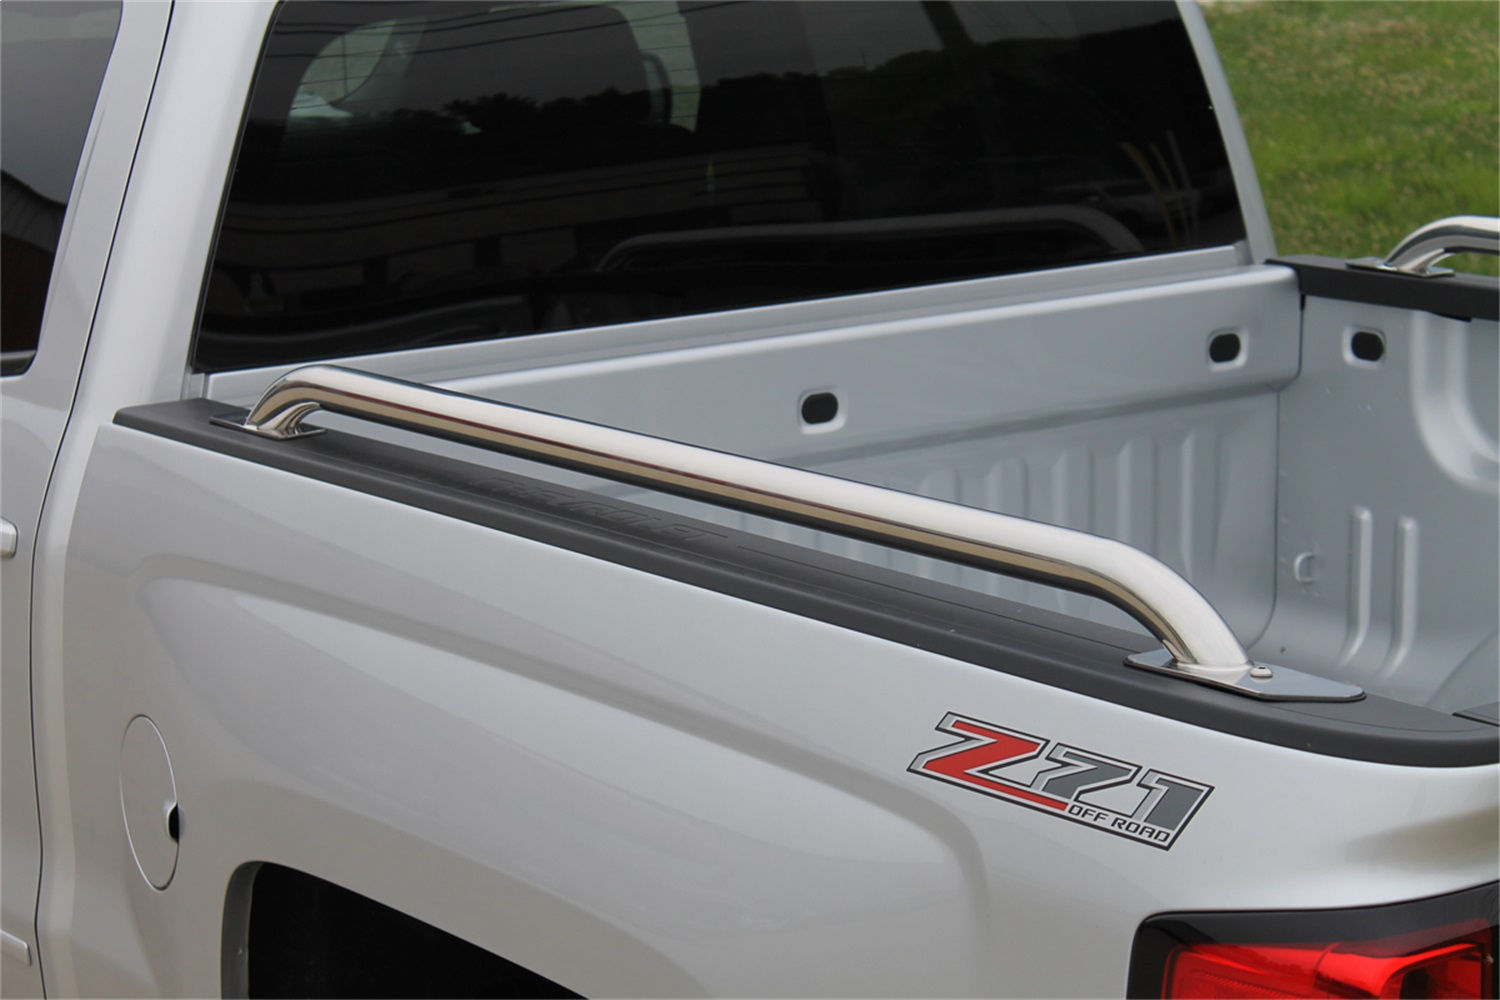 Raptor 0201-0047 Truck Bed Side Rails